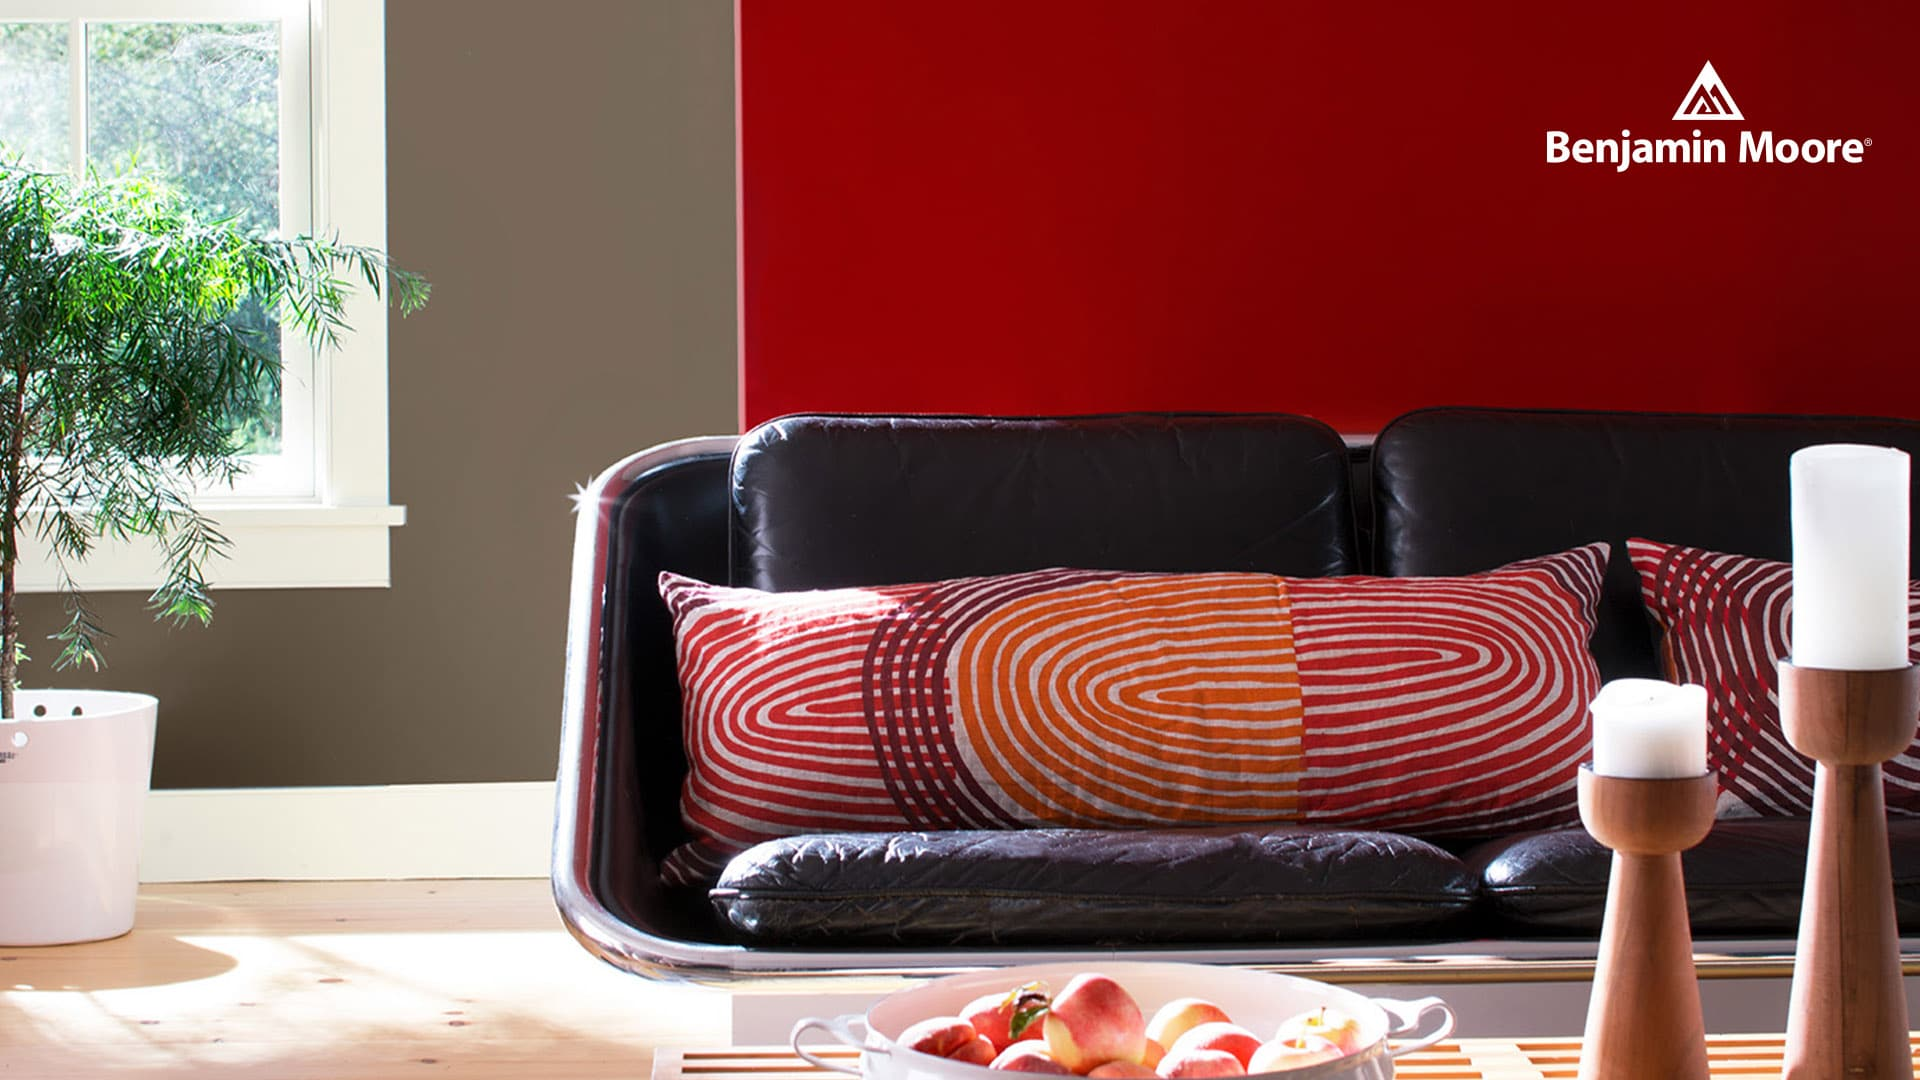 Janovic - Benjamin Moore - Bold Red Feature Wall in Living Room